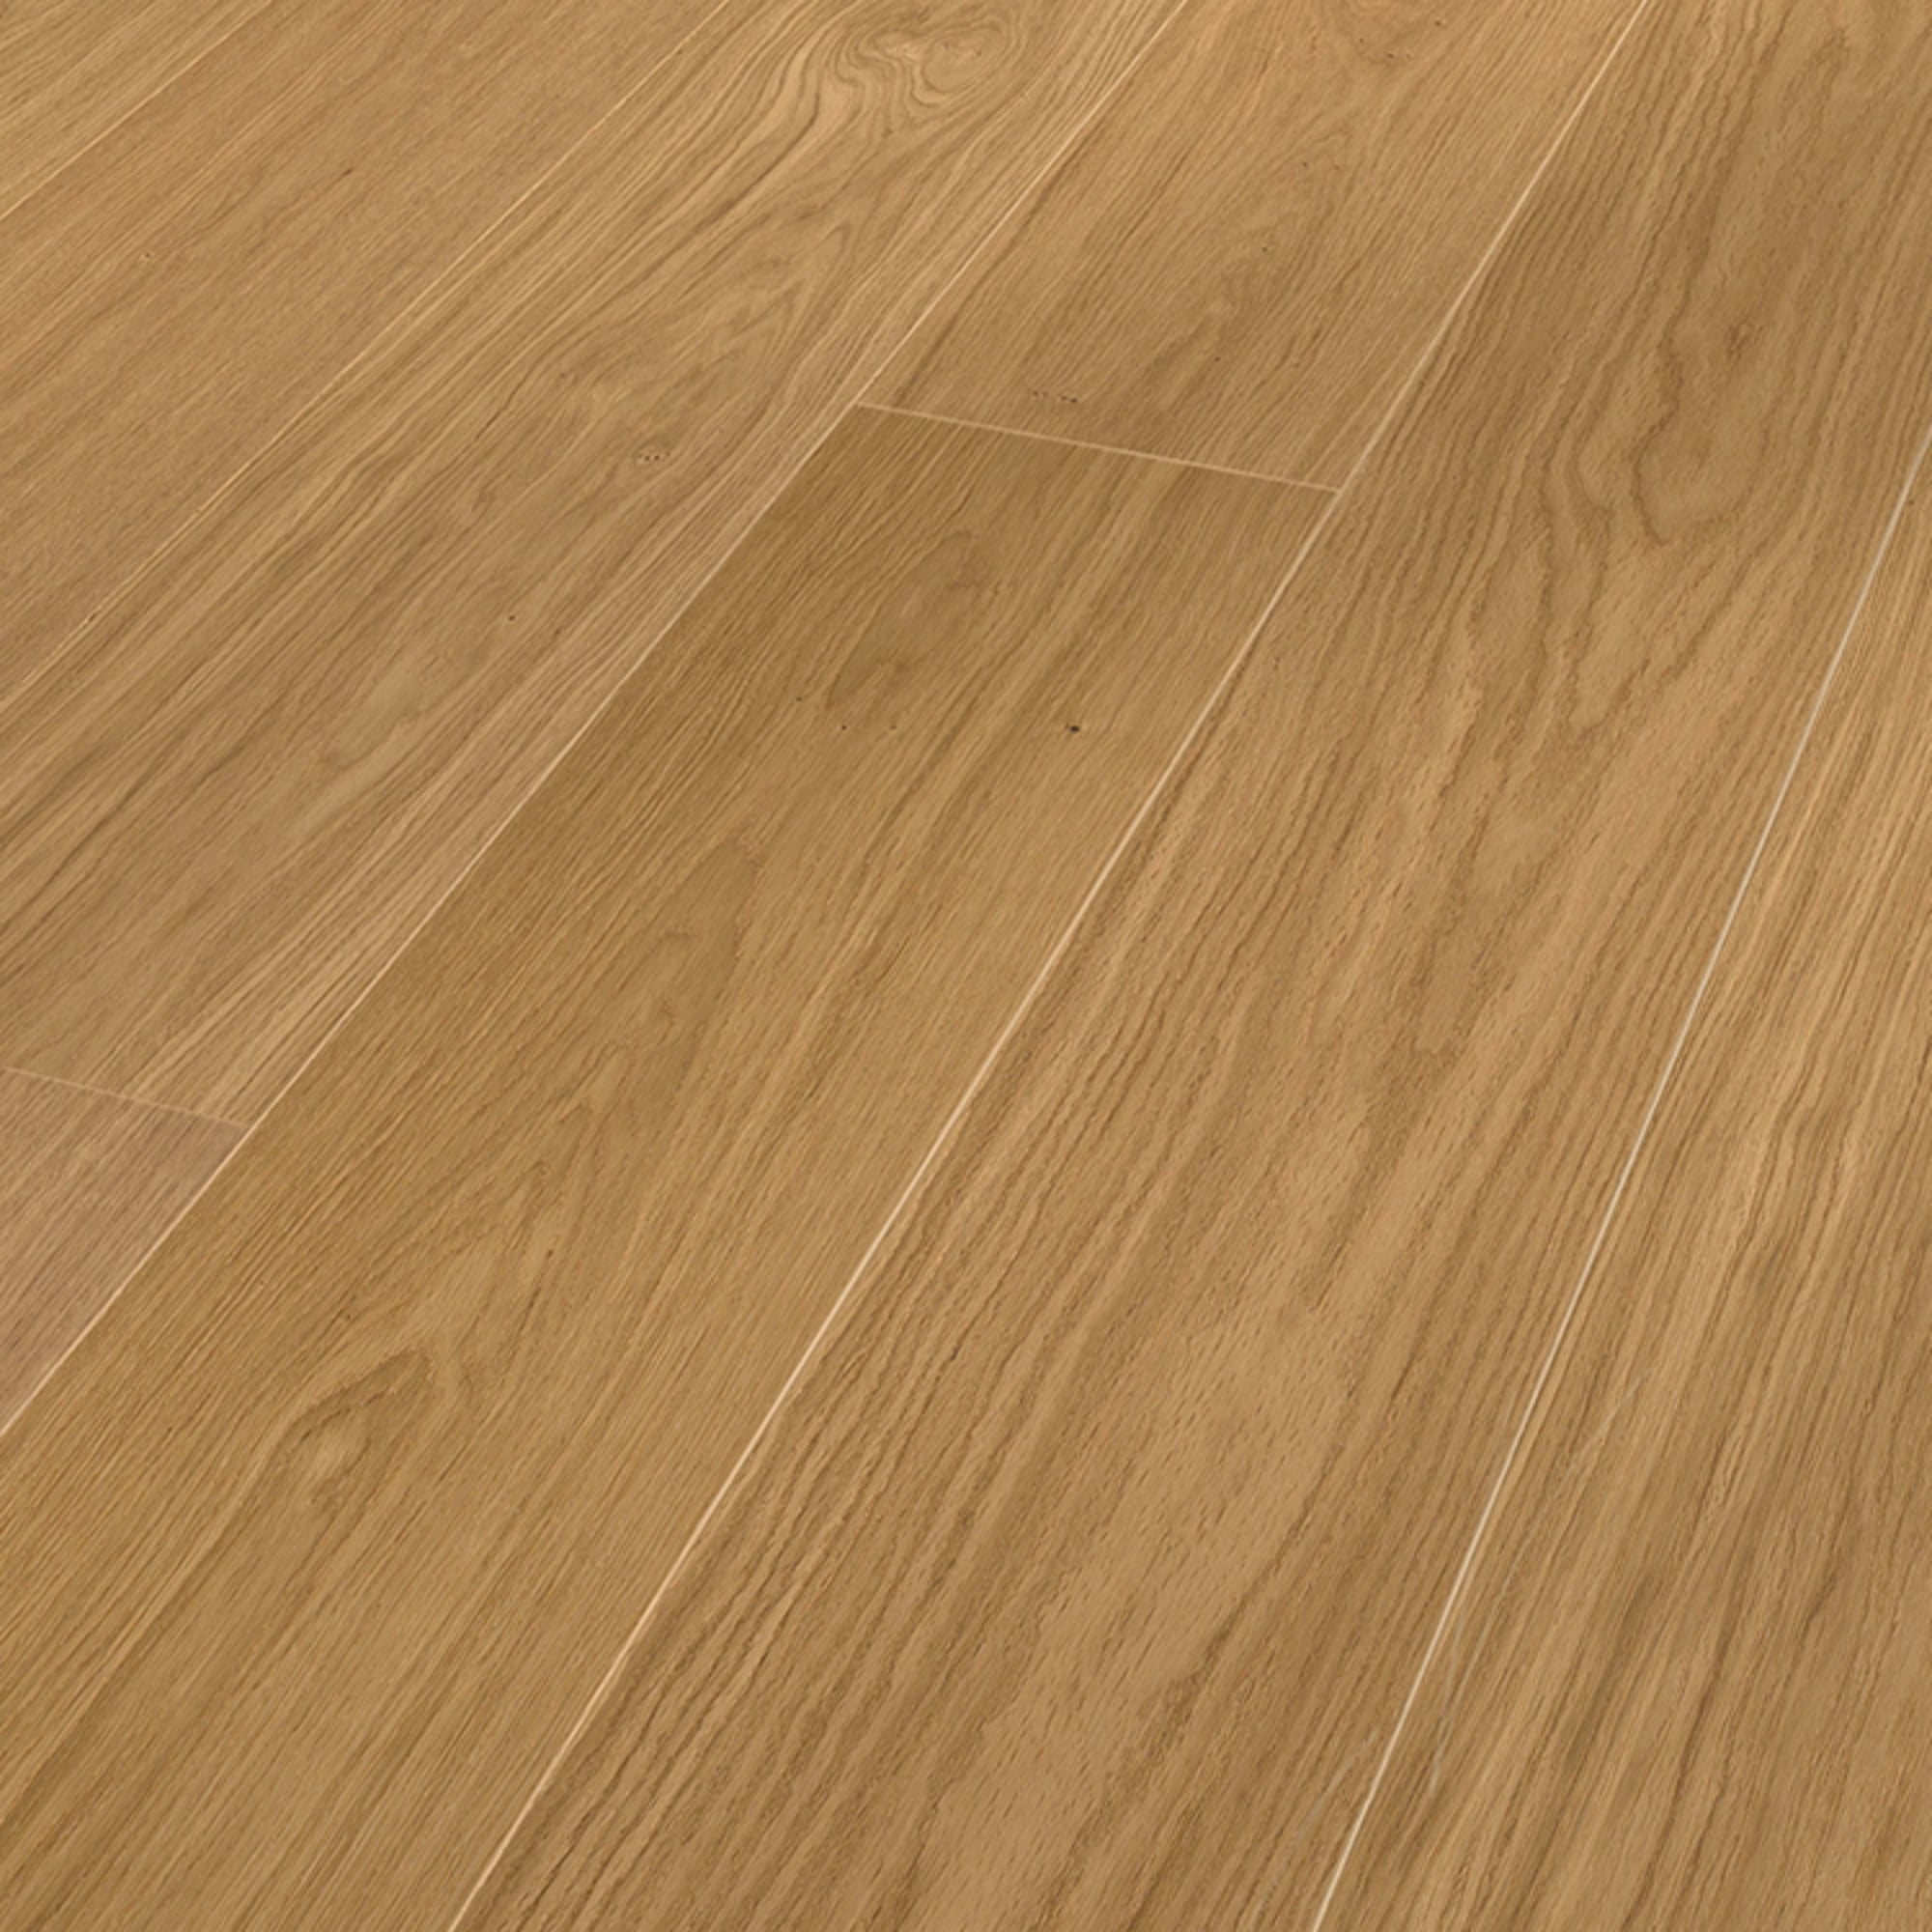 Wood flooring edition m2 uv oiled 13x180mm natural matt for Engineered woods